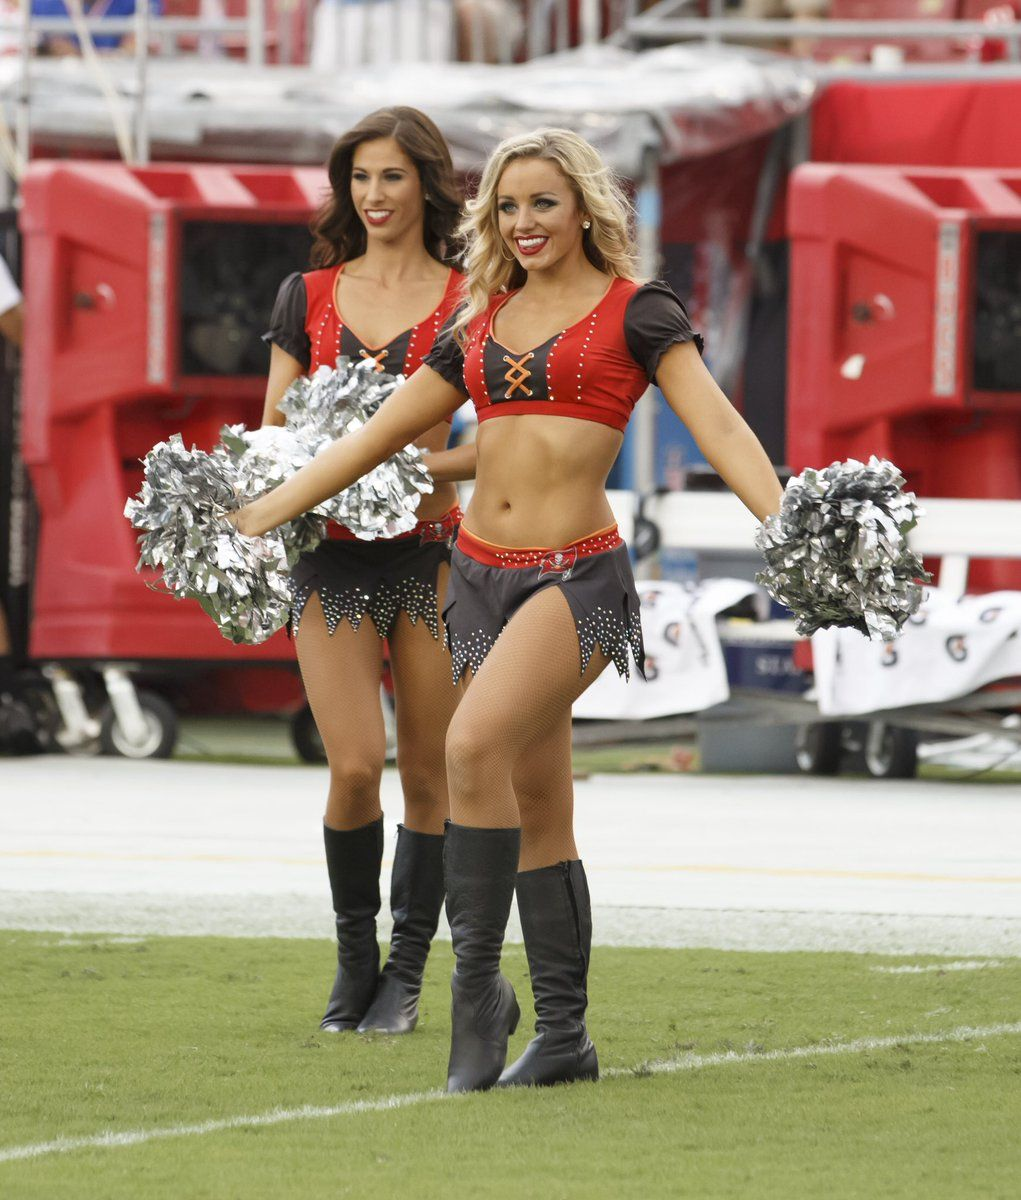 classic fit 3985e 1c4bf Bucs Cheerleaders on | Tampa Bay Buccaneers Cheerleaders ...